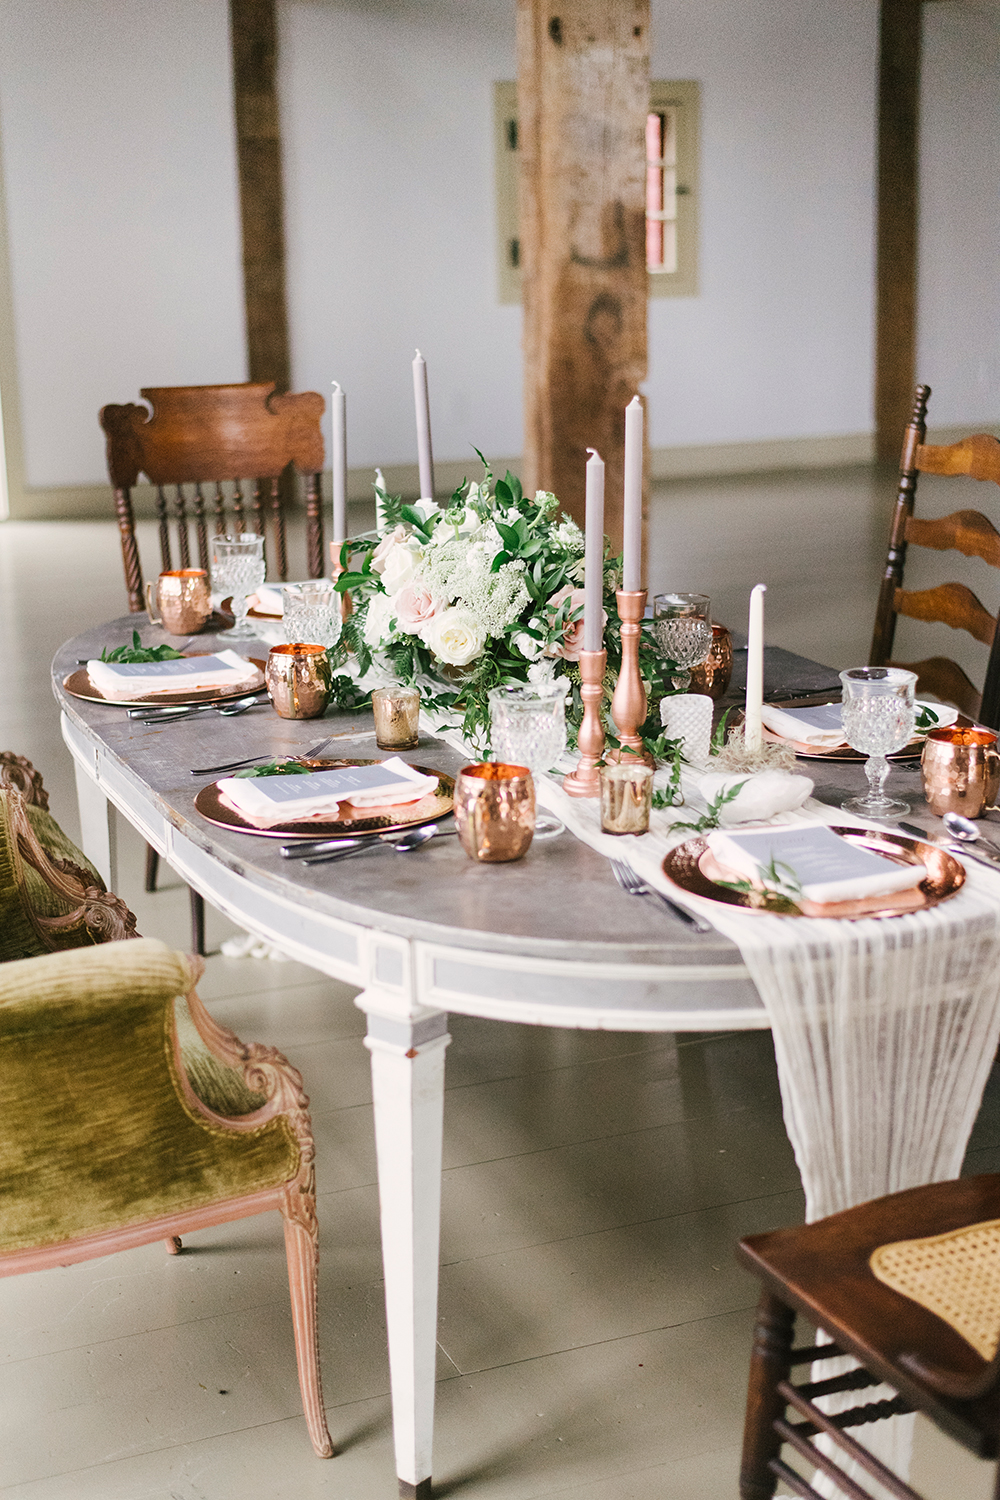 modern copper wedding inspiration - photo by Alicia King Photography http://ruffledblog.com/upstate-new-york-wedding-ideas-with-copper